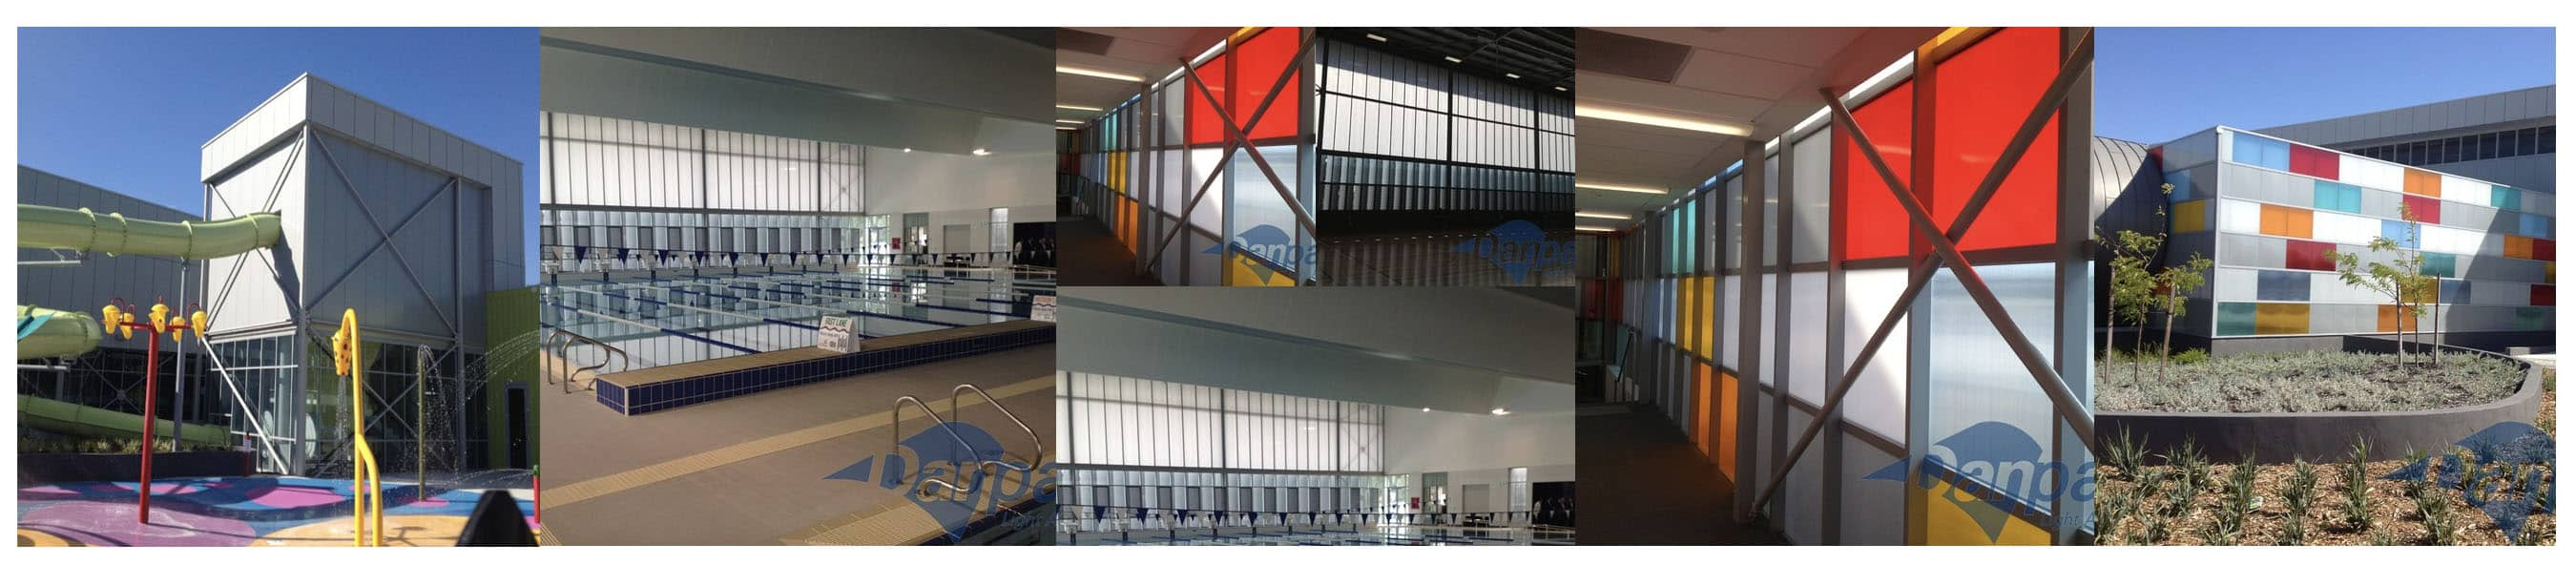 Seamless Polycarbonate Curtain Wall Facade at Cannington Leisureplex, Western Australia